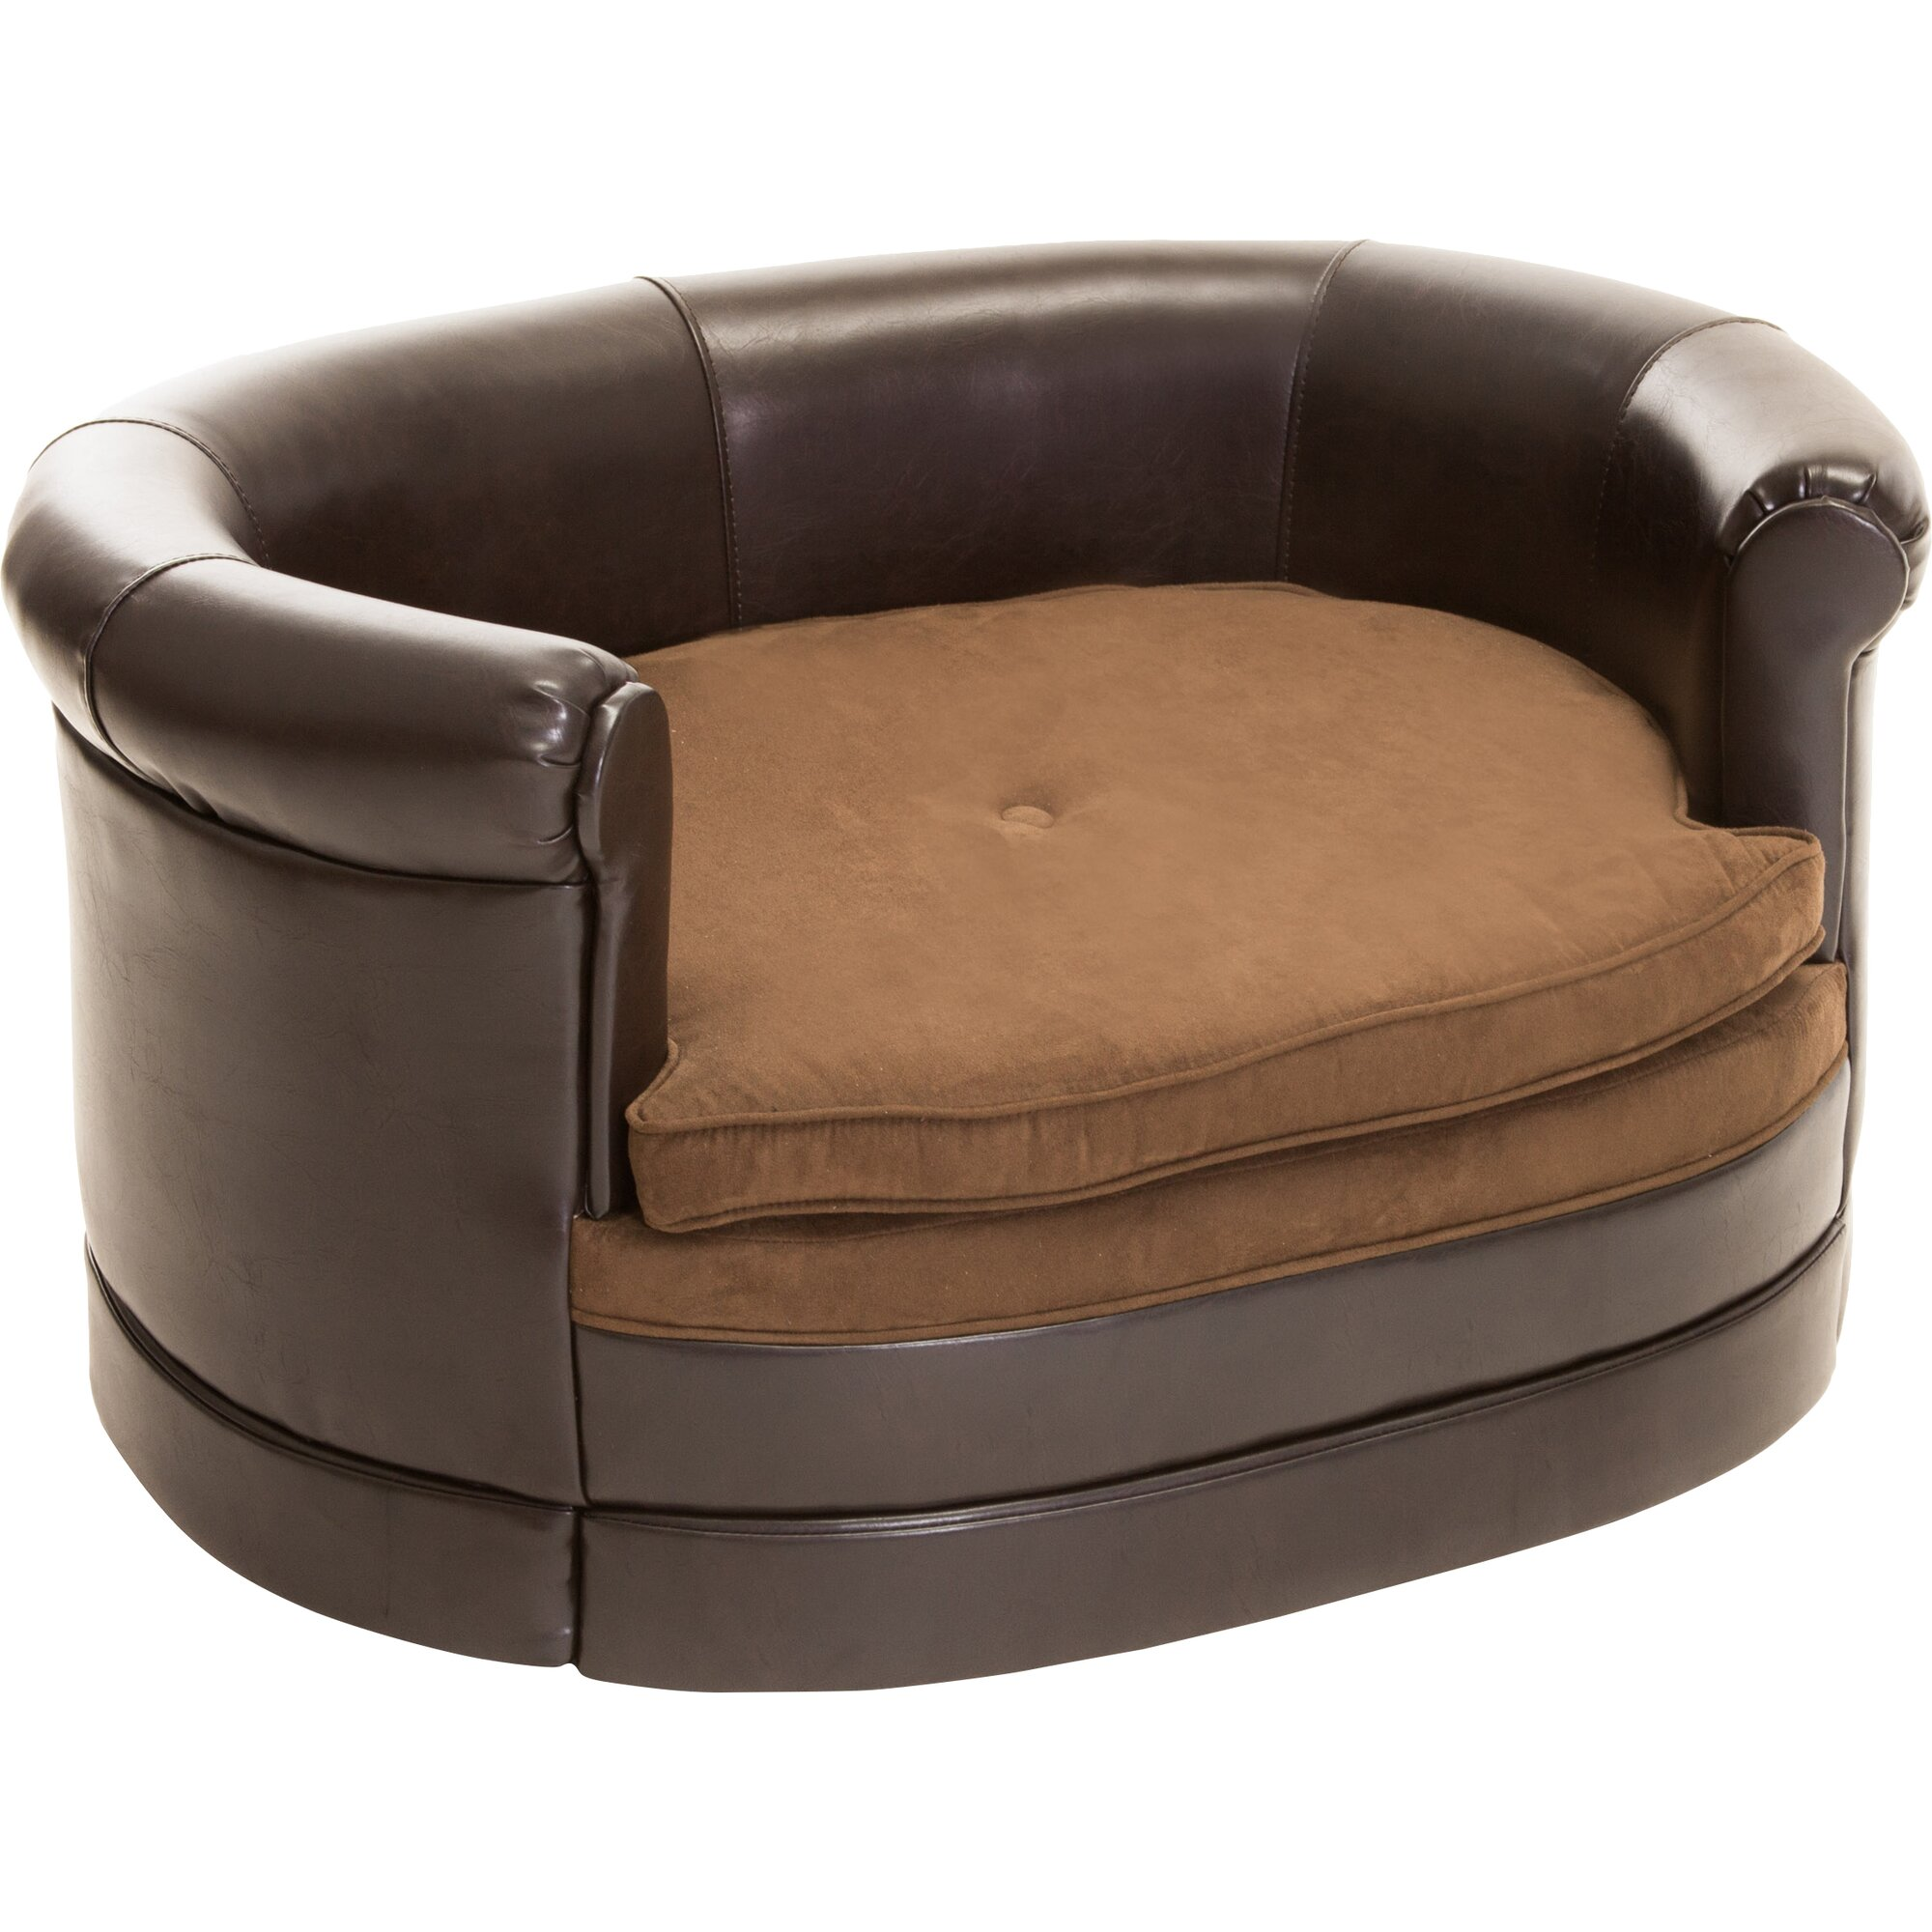 home loft concepts dofferville oval cushy dog sofa. Black Bedroom Furniture Sets. Home Design Ideas